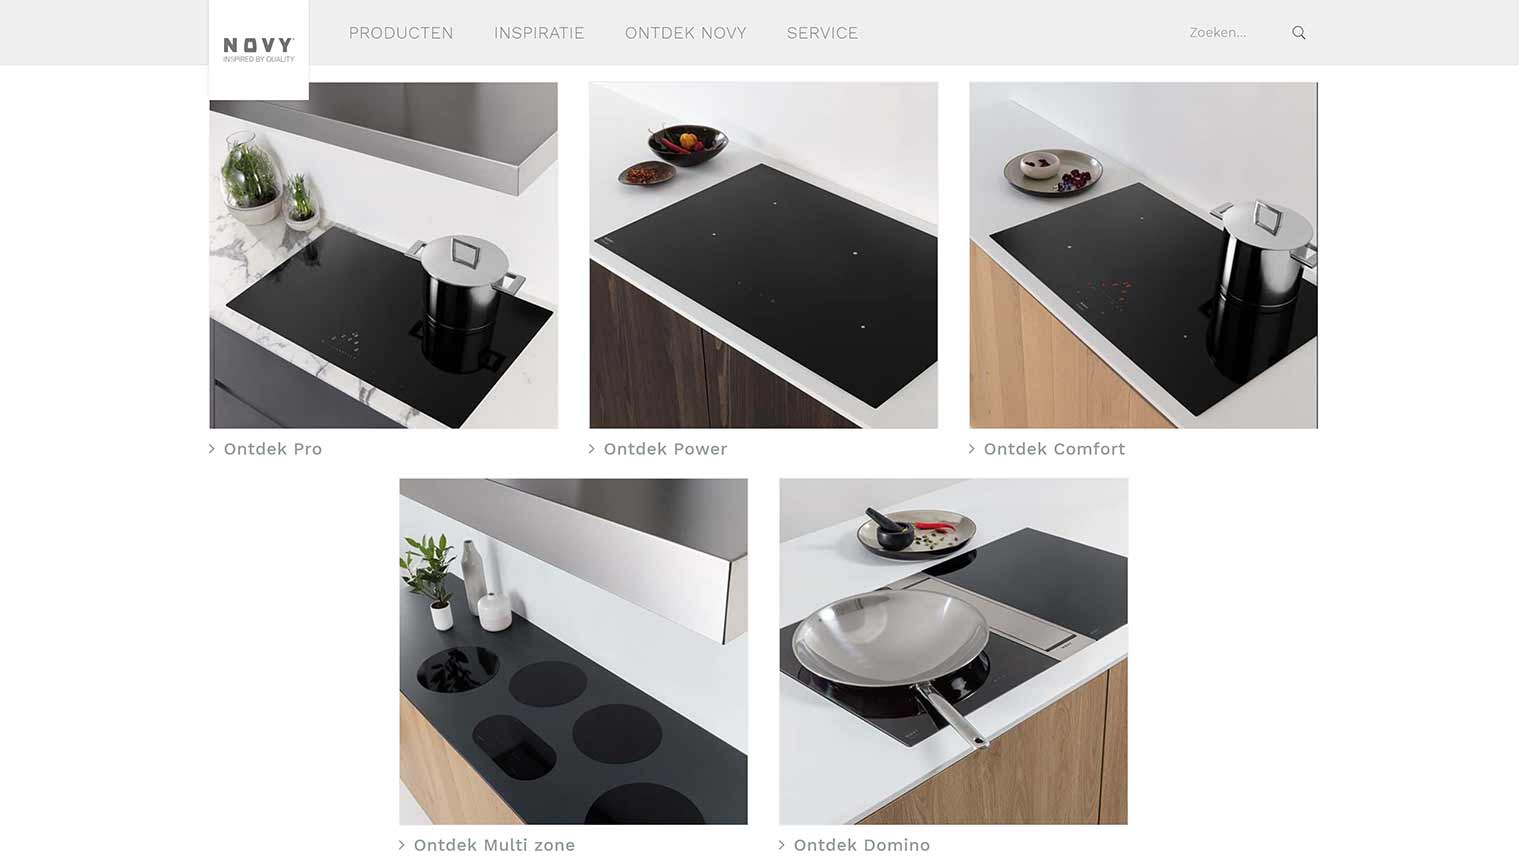 The horrible product overview on the new website of Novy